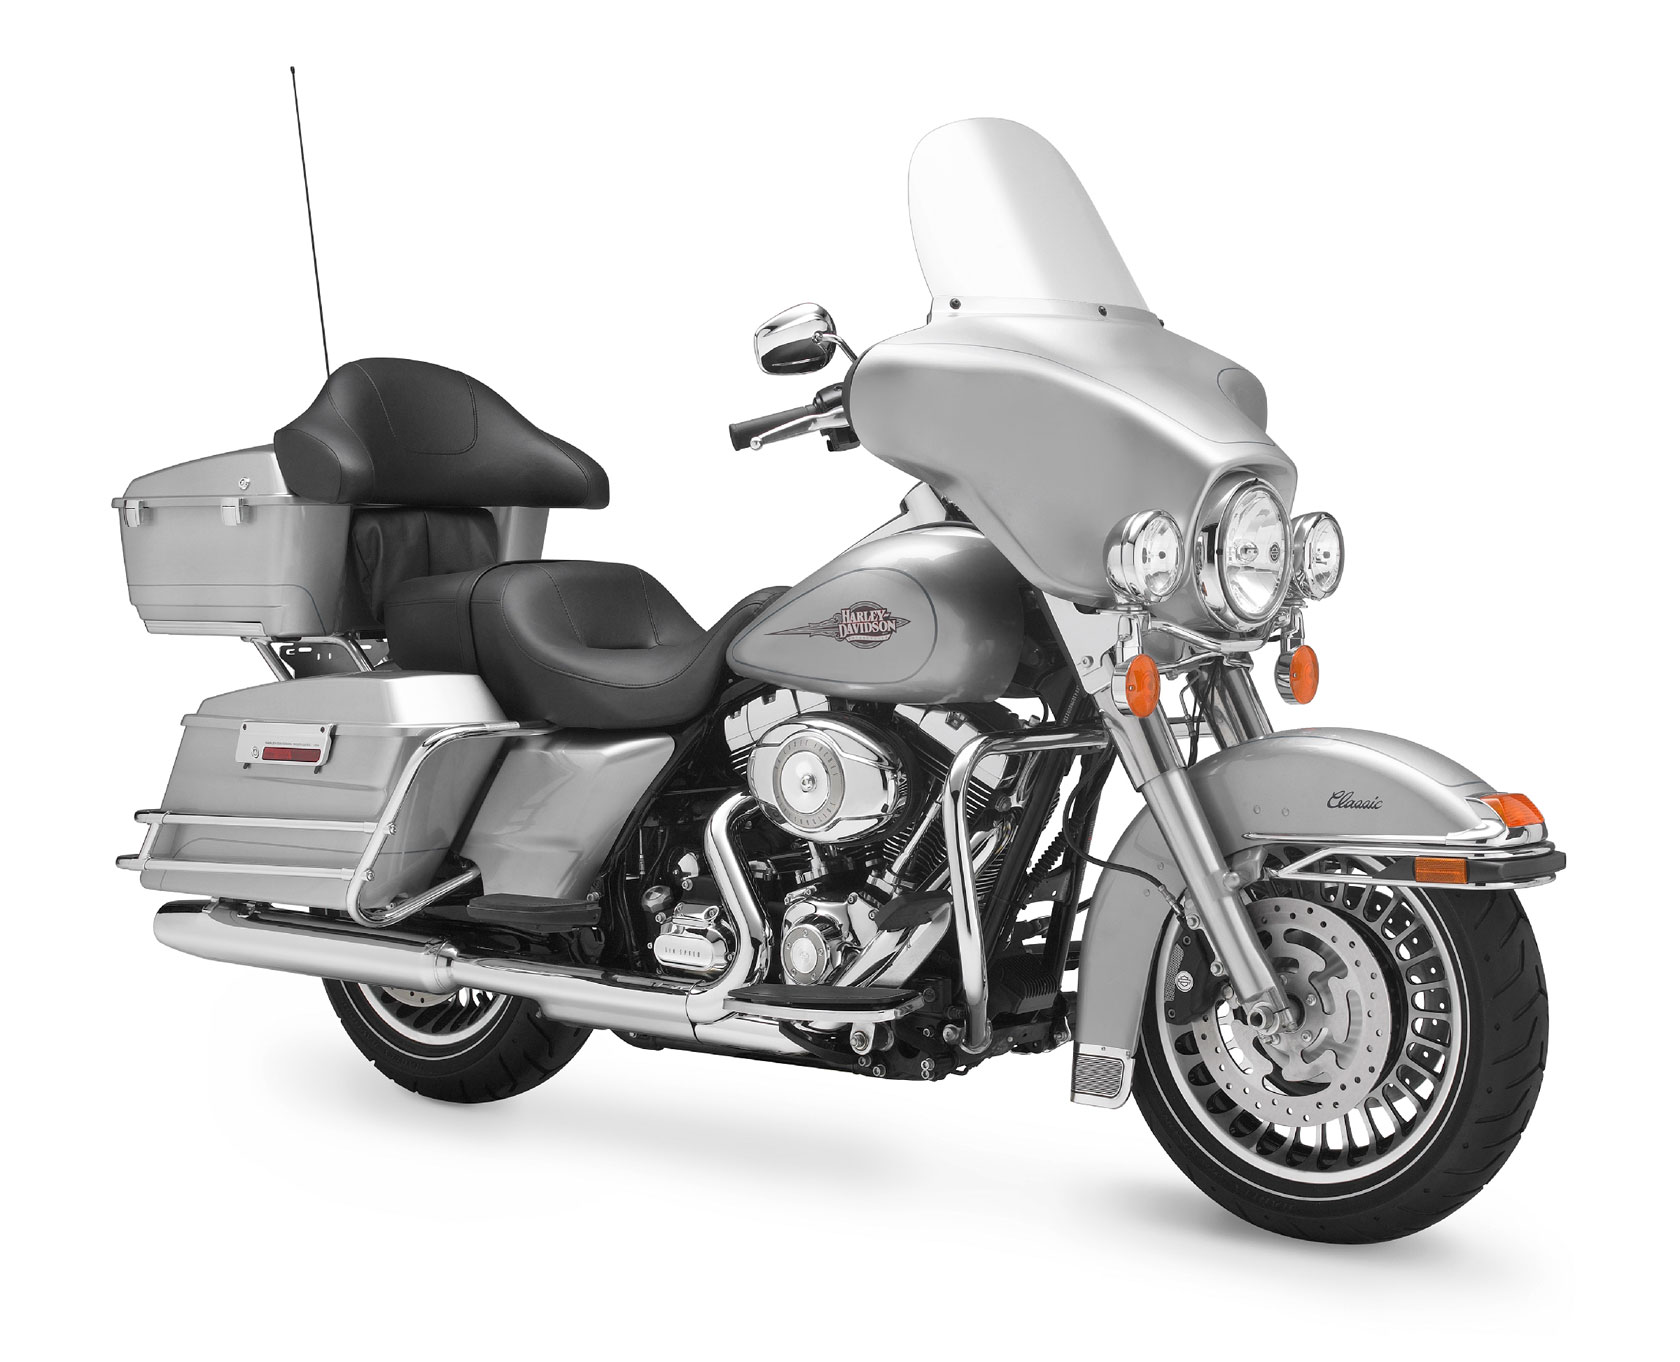 Harley-Davidson FLHTC Electra Glide Classic 2010 pics #19058